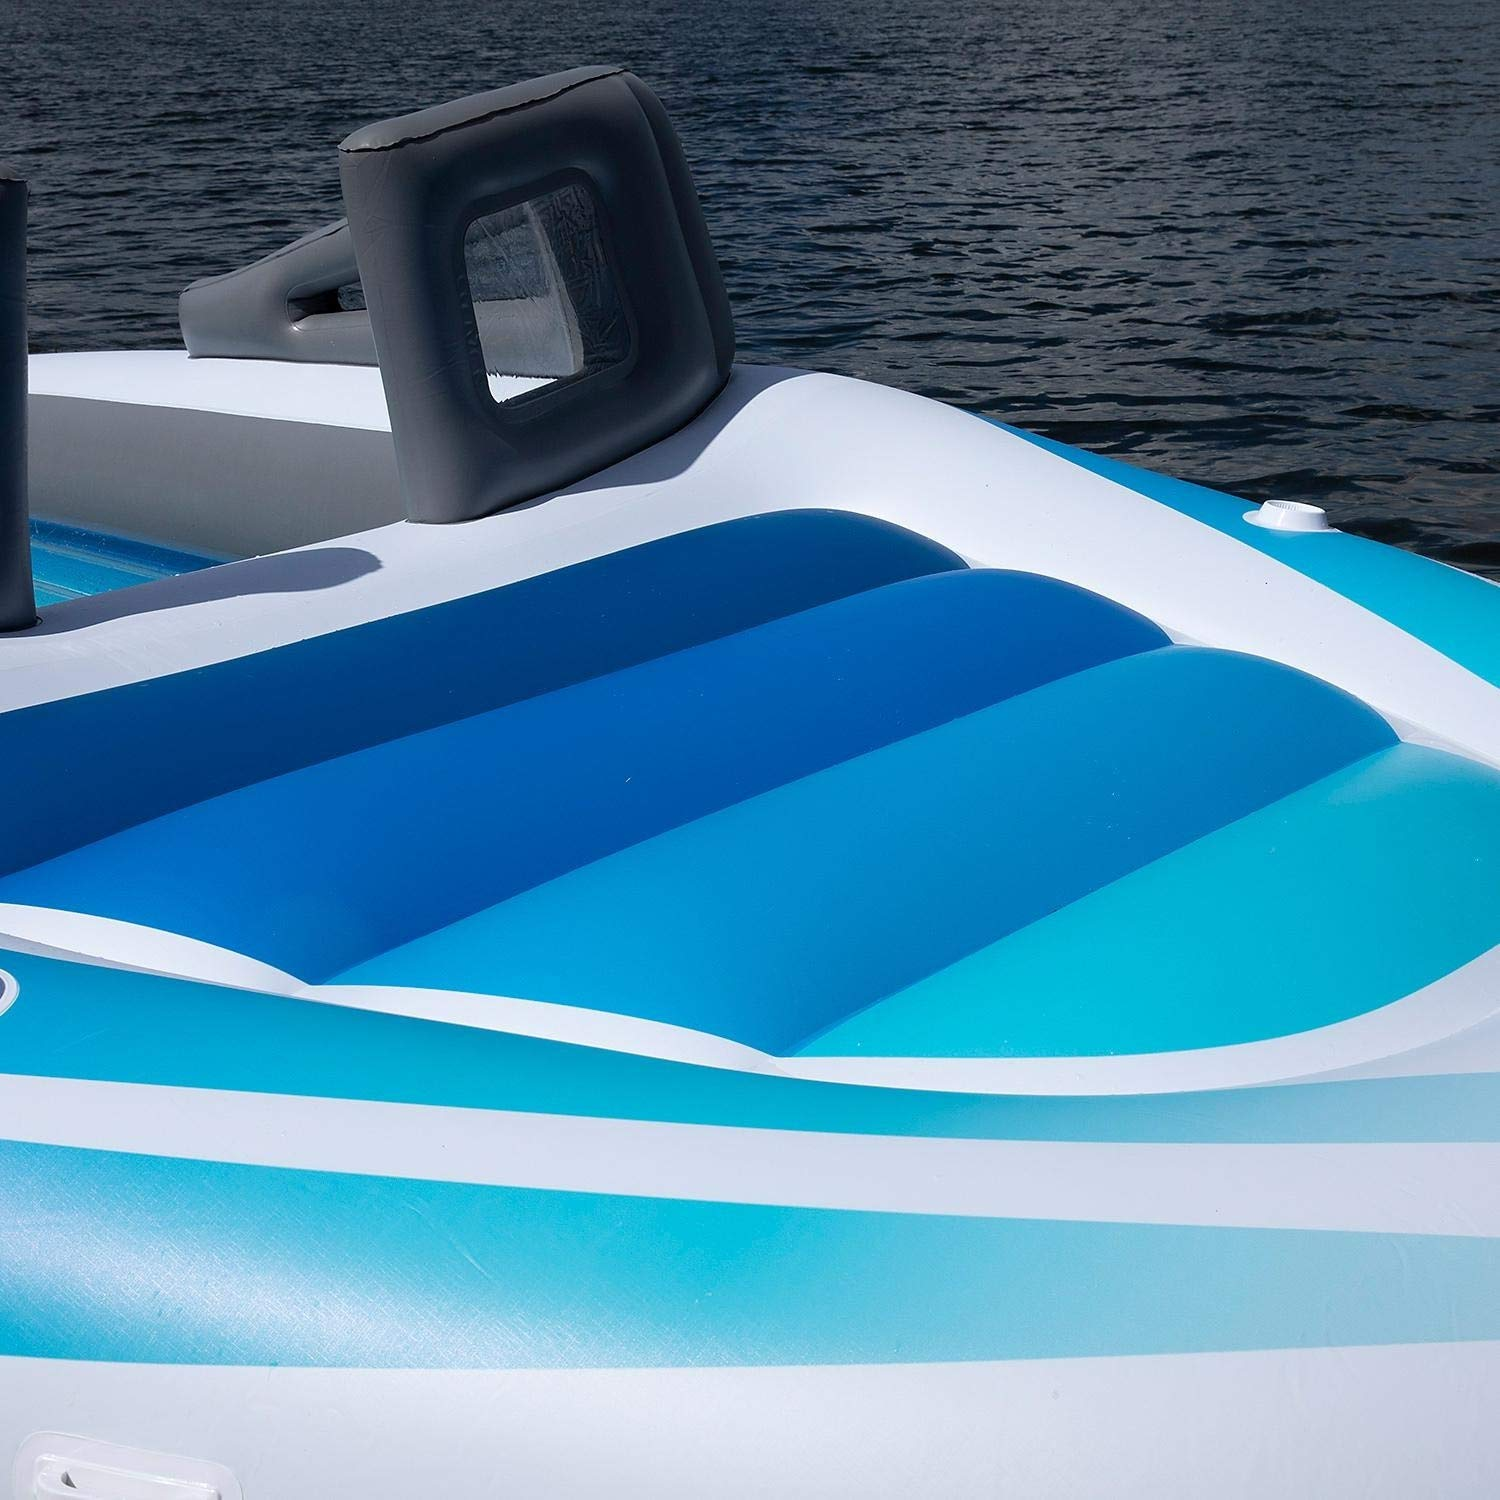 6-Person Inflatable Bay Breeze Boat Island Party Island by SunPleasureInflatable (Image #6)